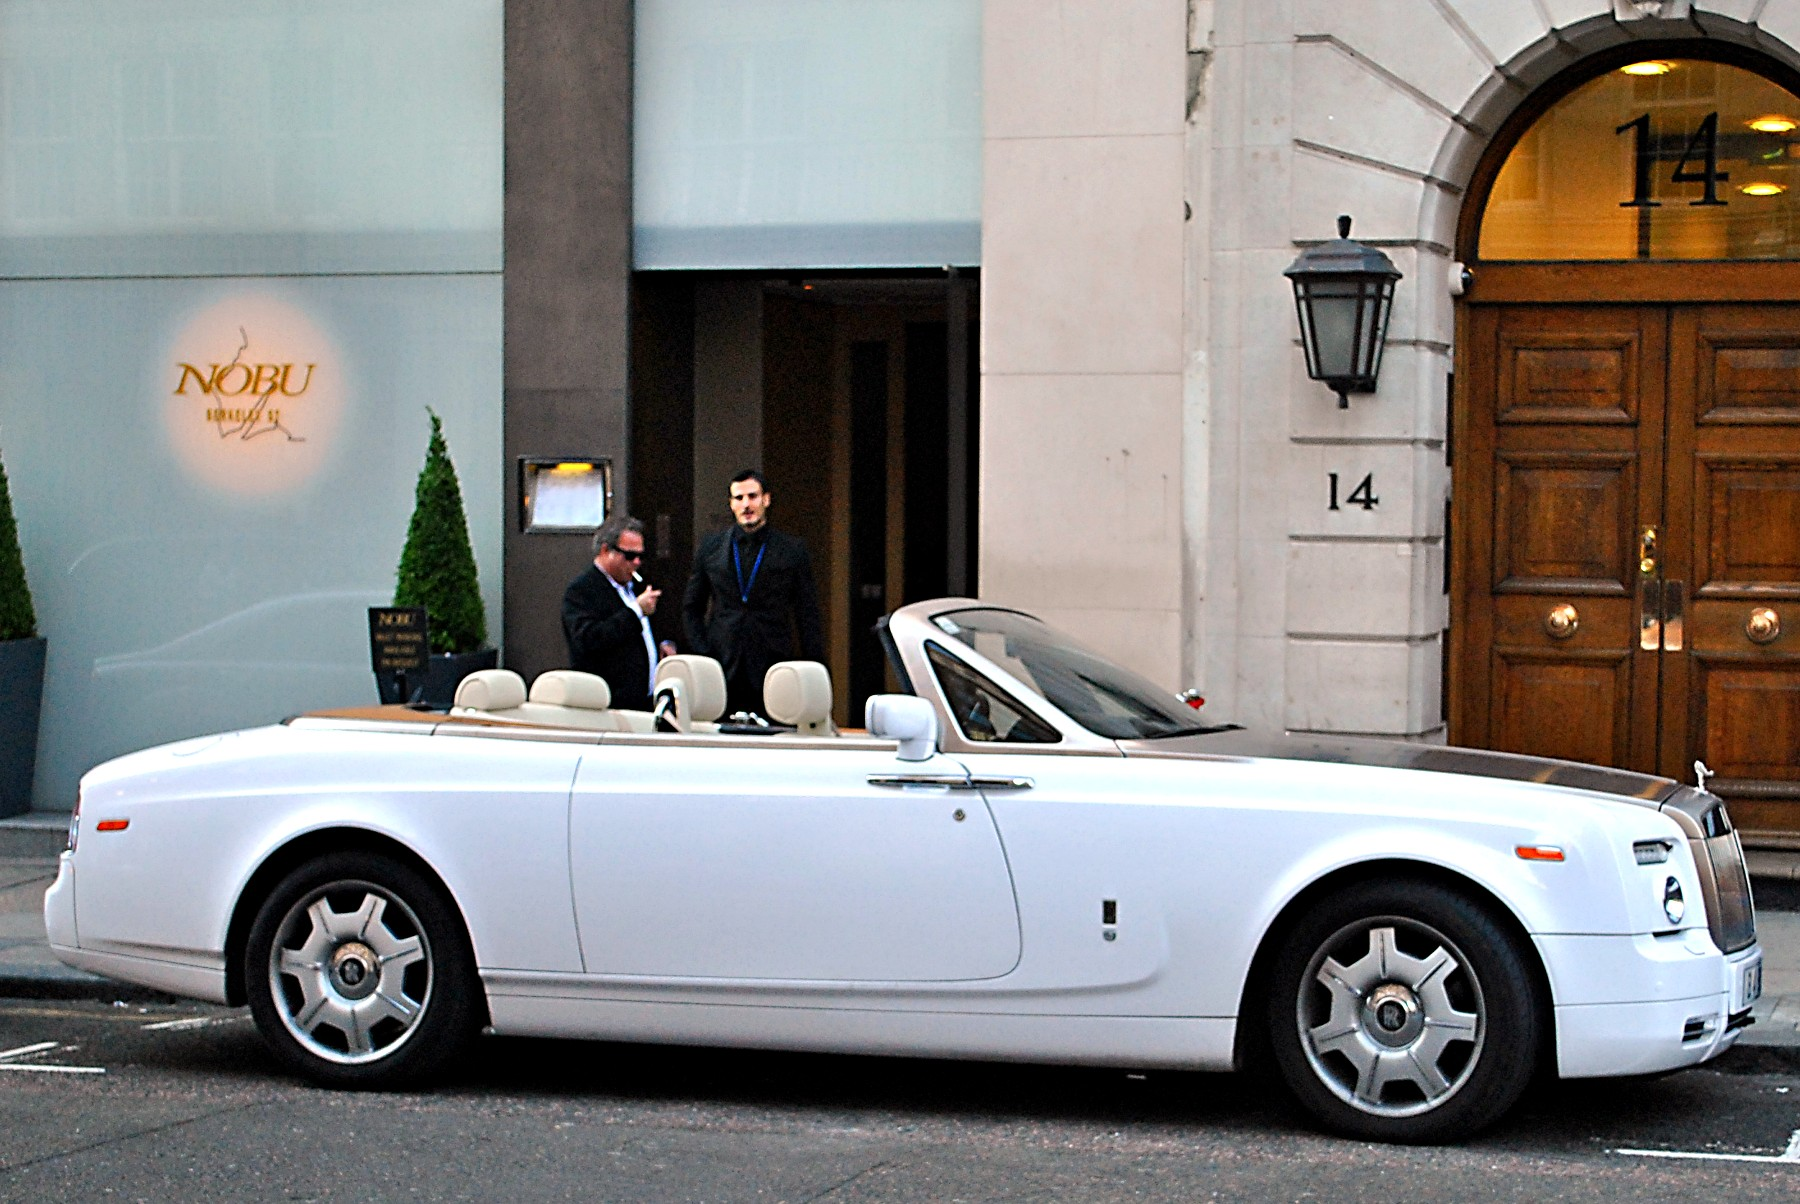 2011 Rolls royce Phantom Drophead Coupe #7